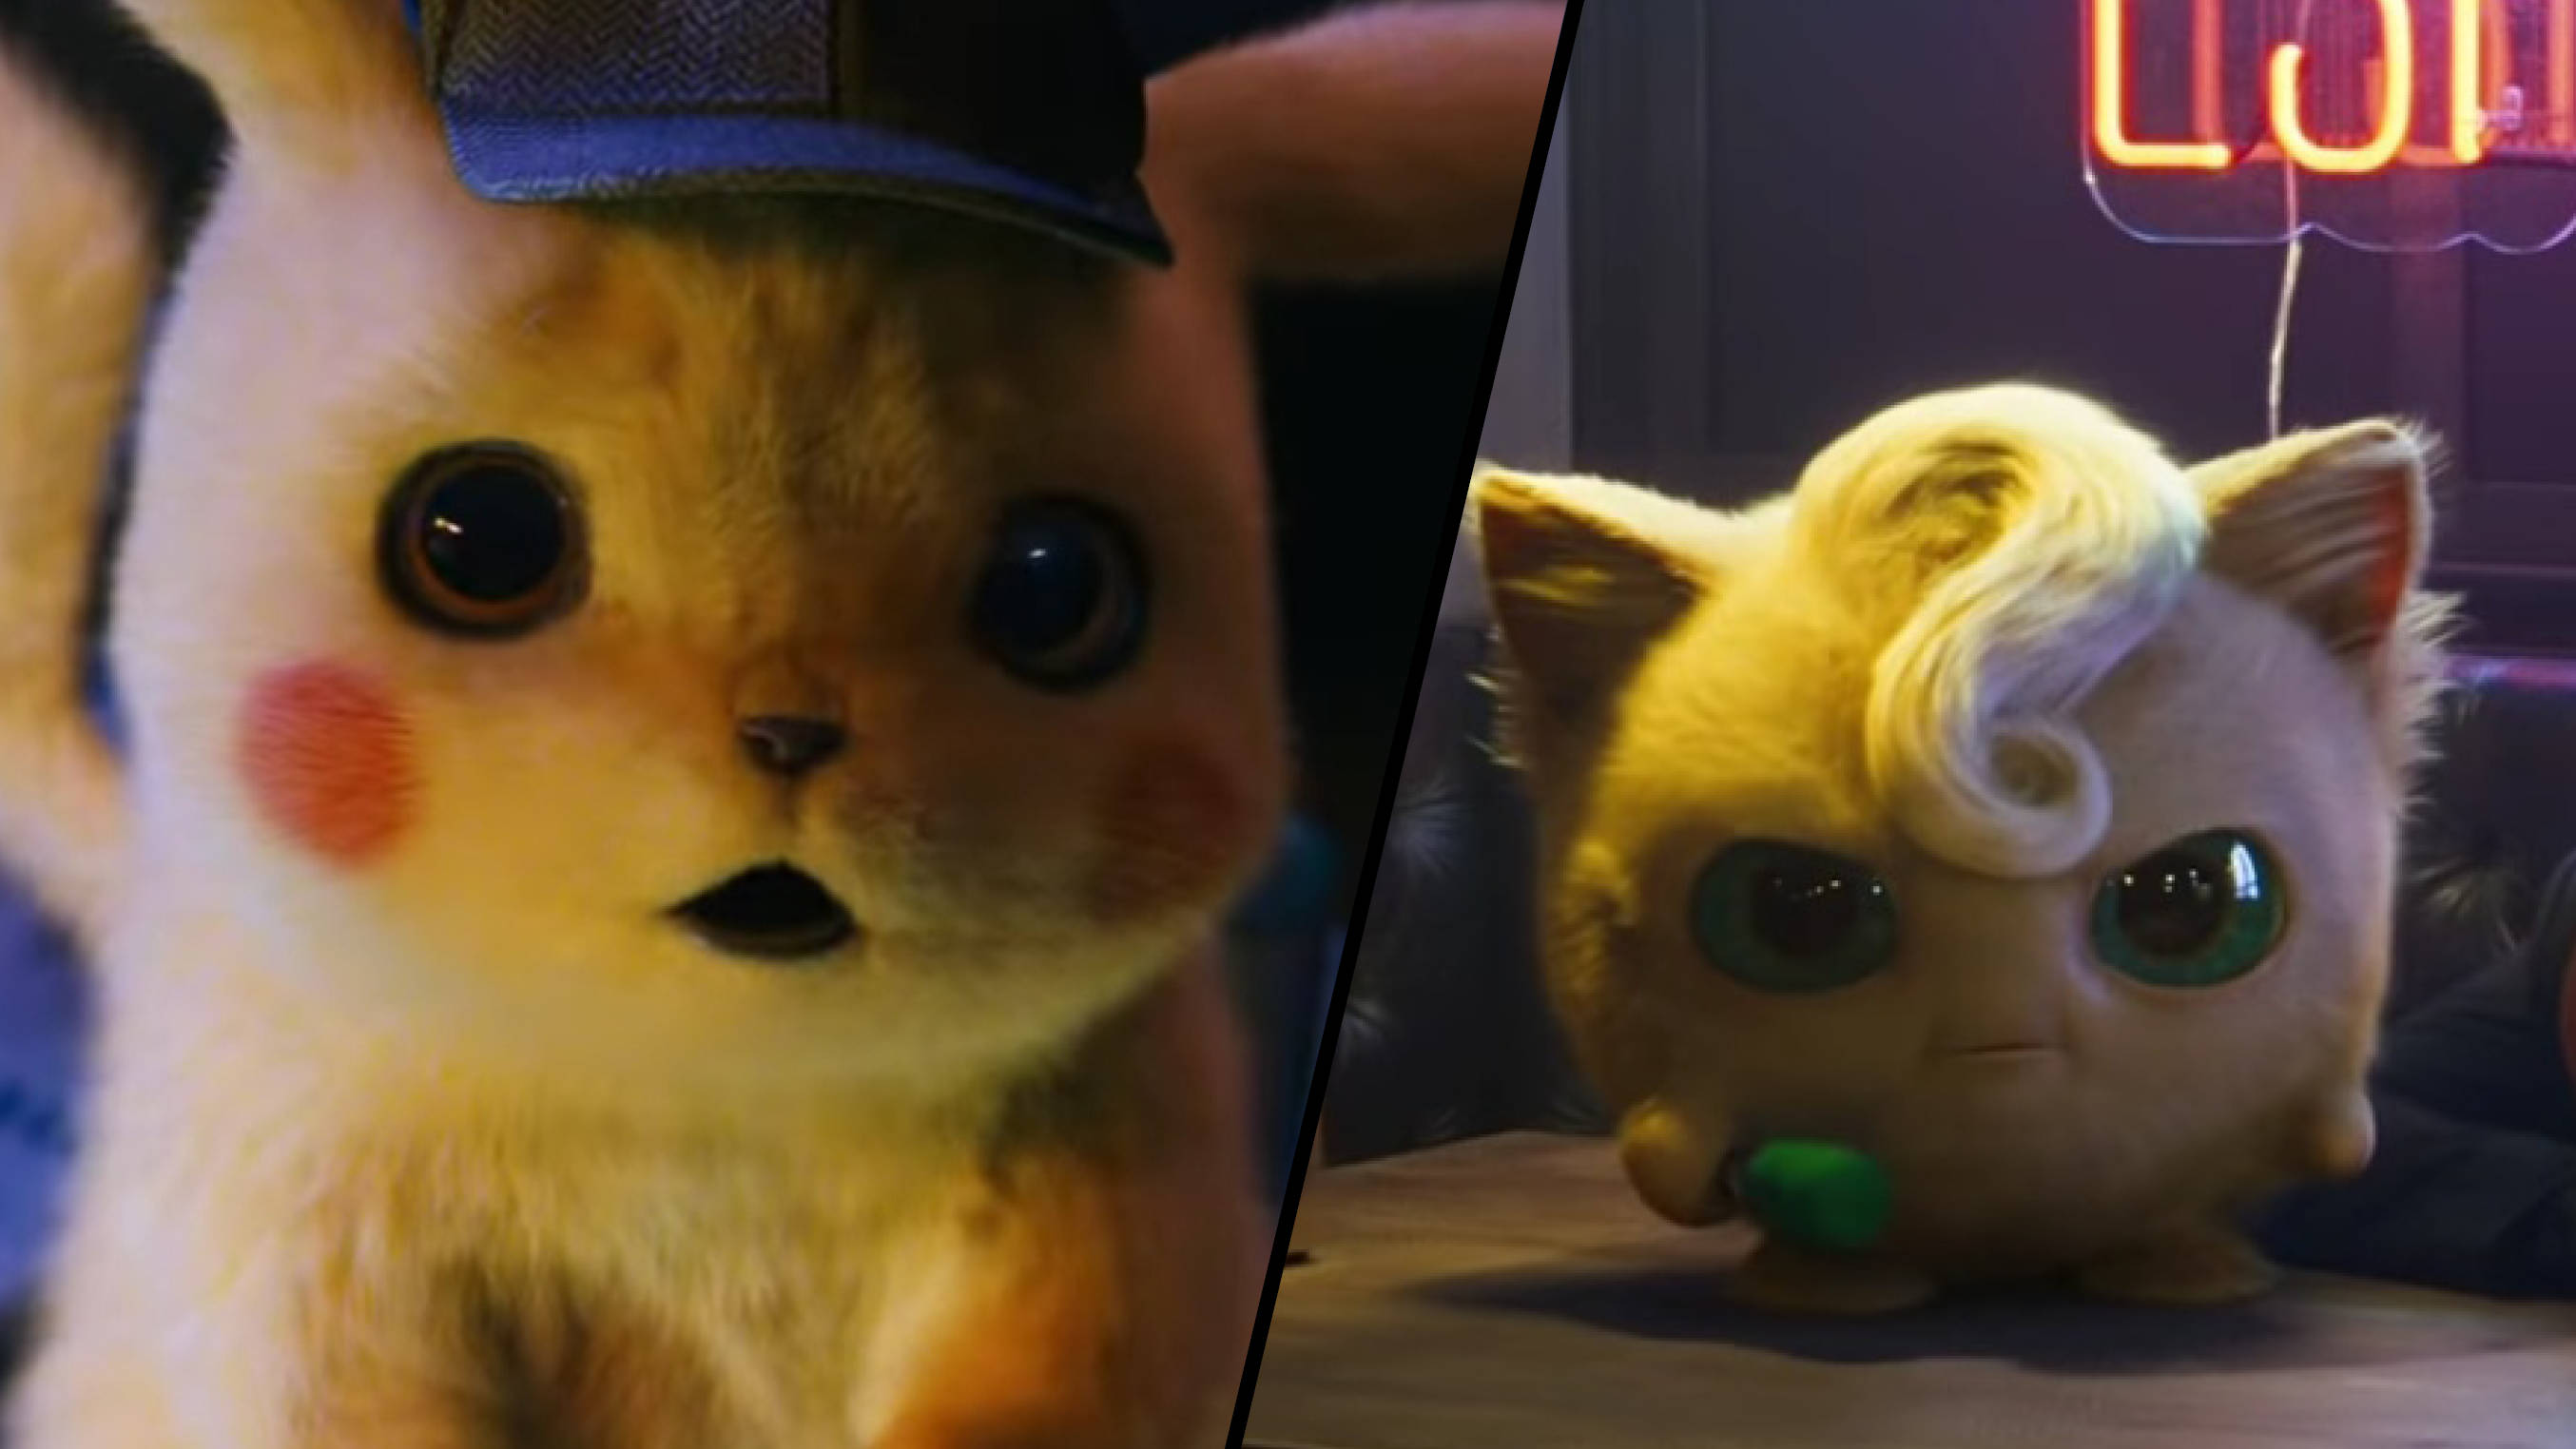 The Internet Has Already Turned Detective Pikachu Into A Meme And